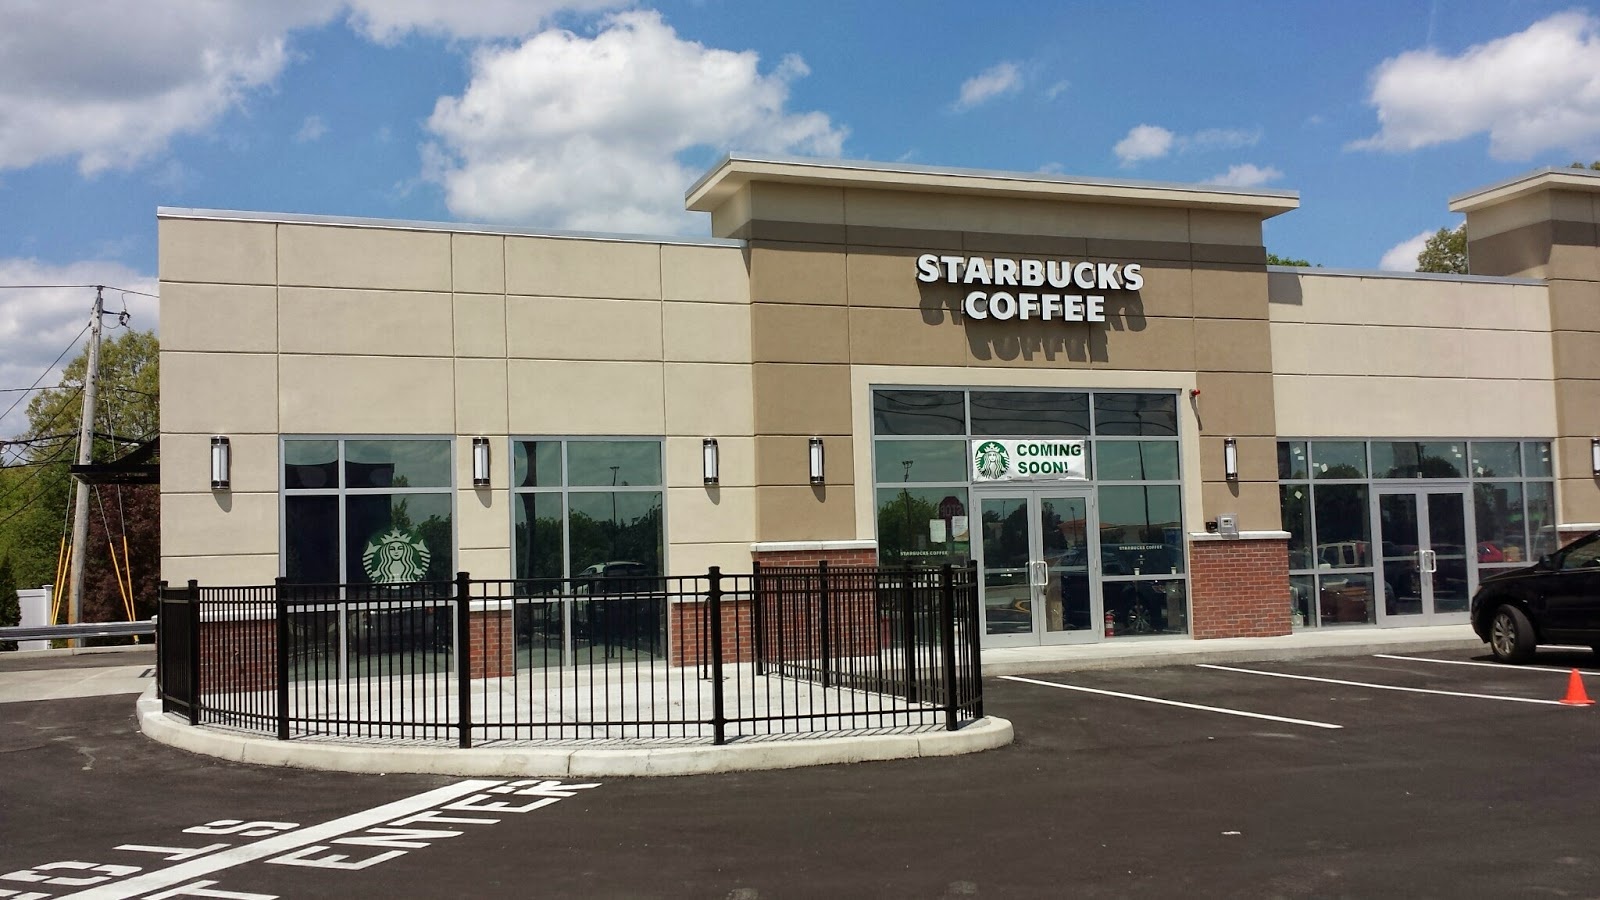 franklin matters reporting by walking around part 2 photo essay starbucks is not yet open in its new location